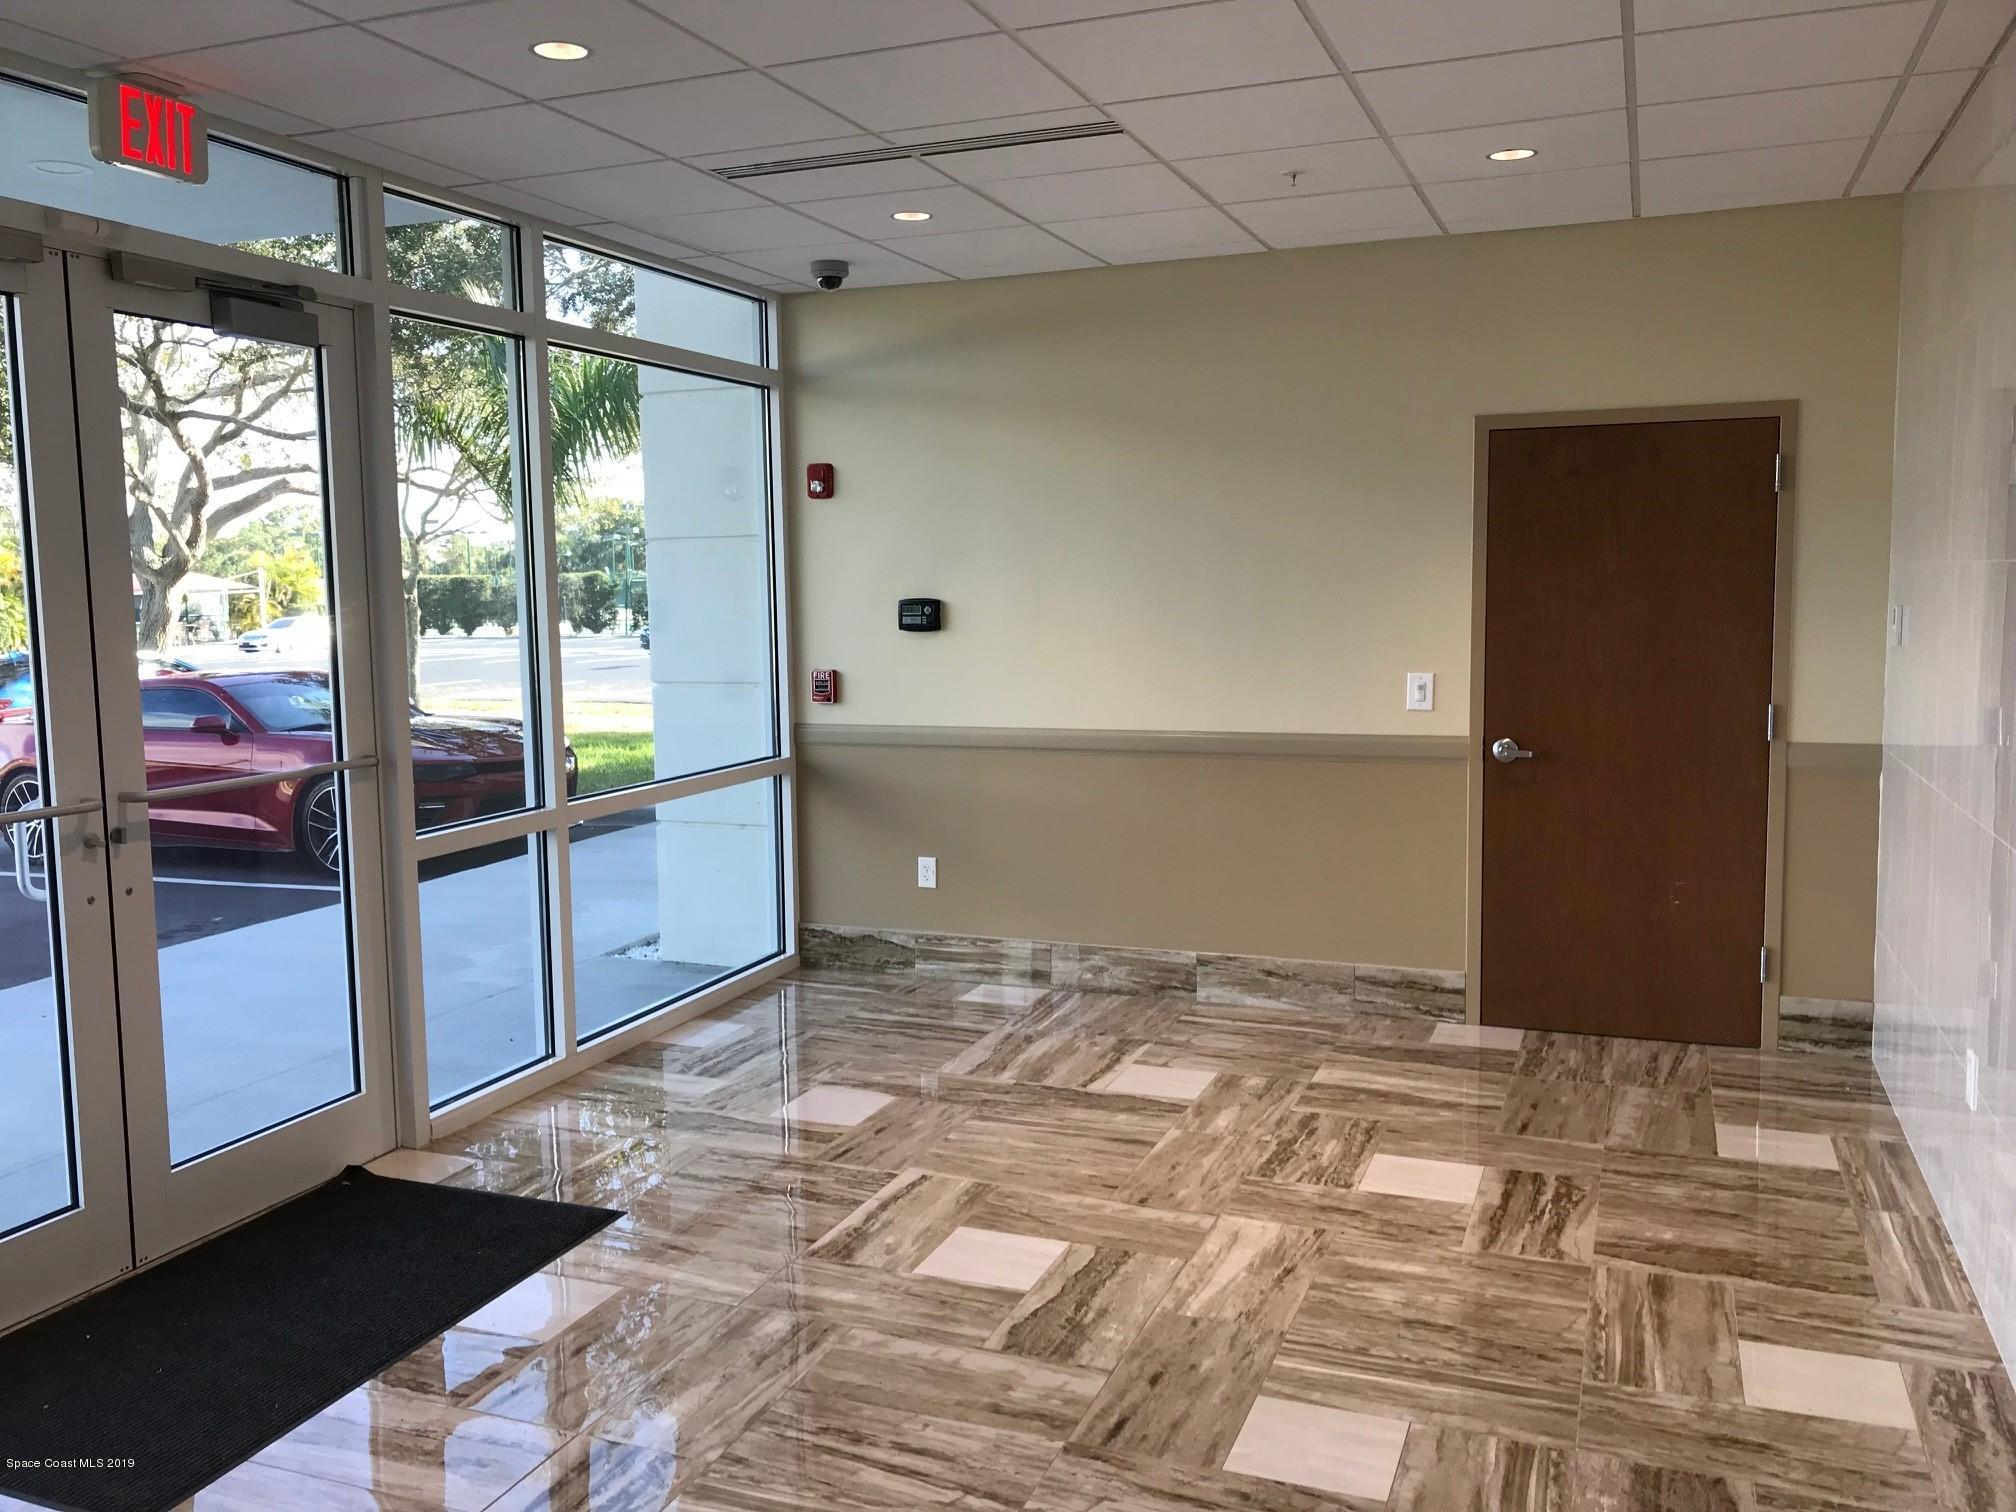 Commercial for Rent at 2 Suntree Melbourne, Florida 32940 United States